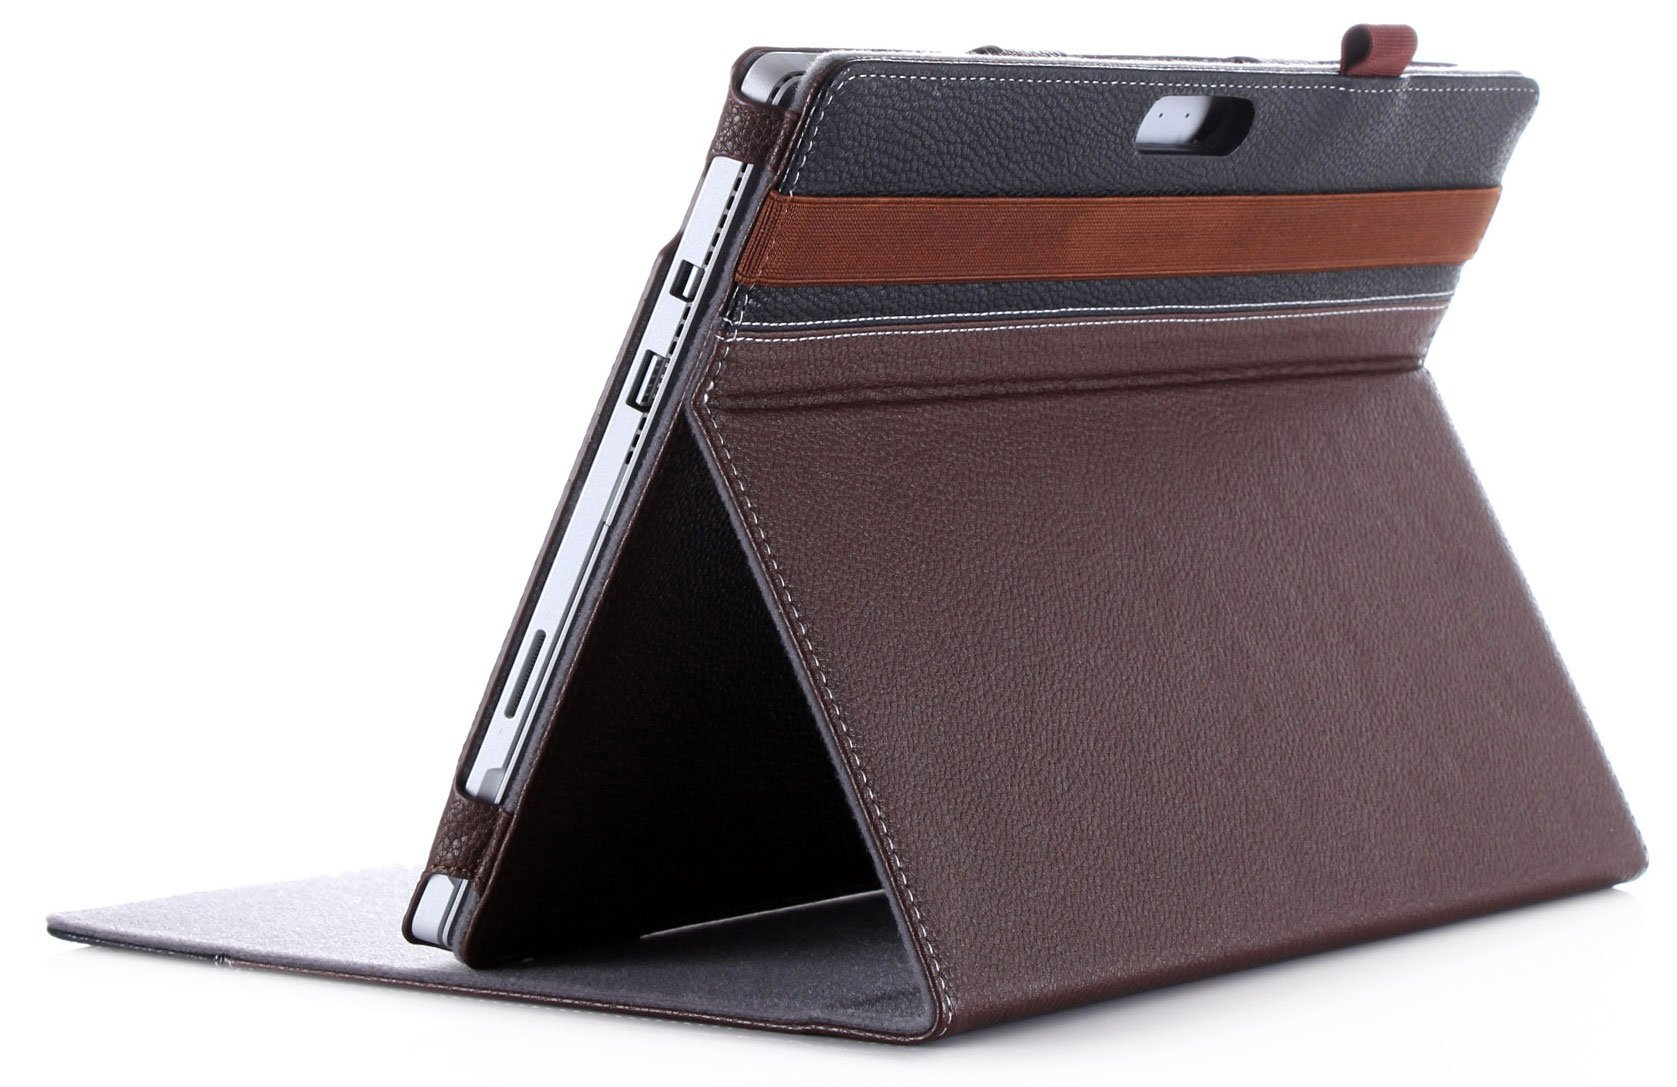 Microsoft Surface Pro 4 Case Procase Premium Folio Cover